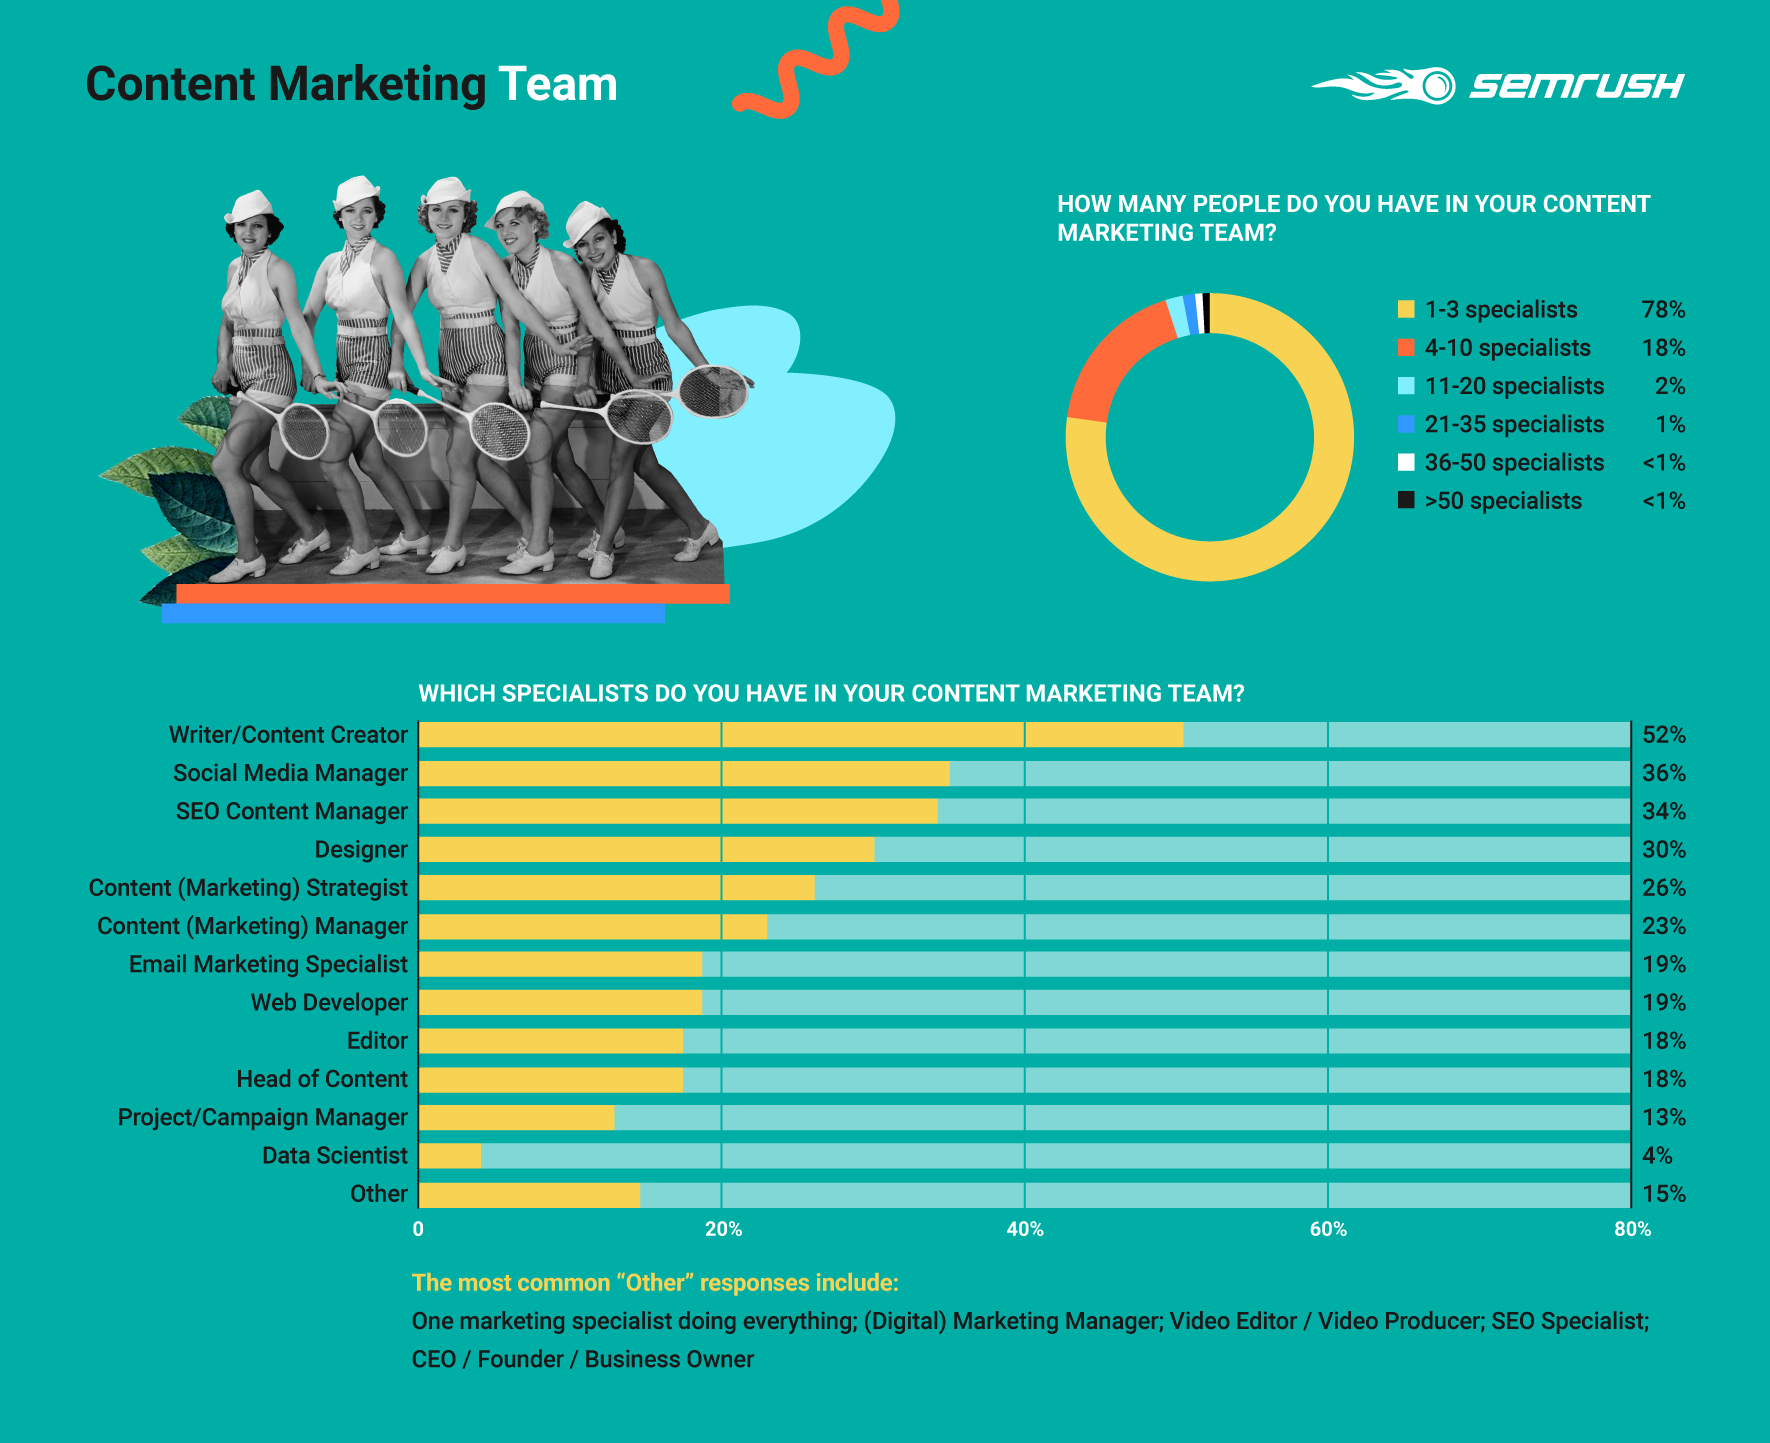 Content Marketing Team Survey results